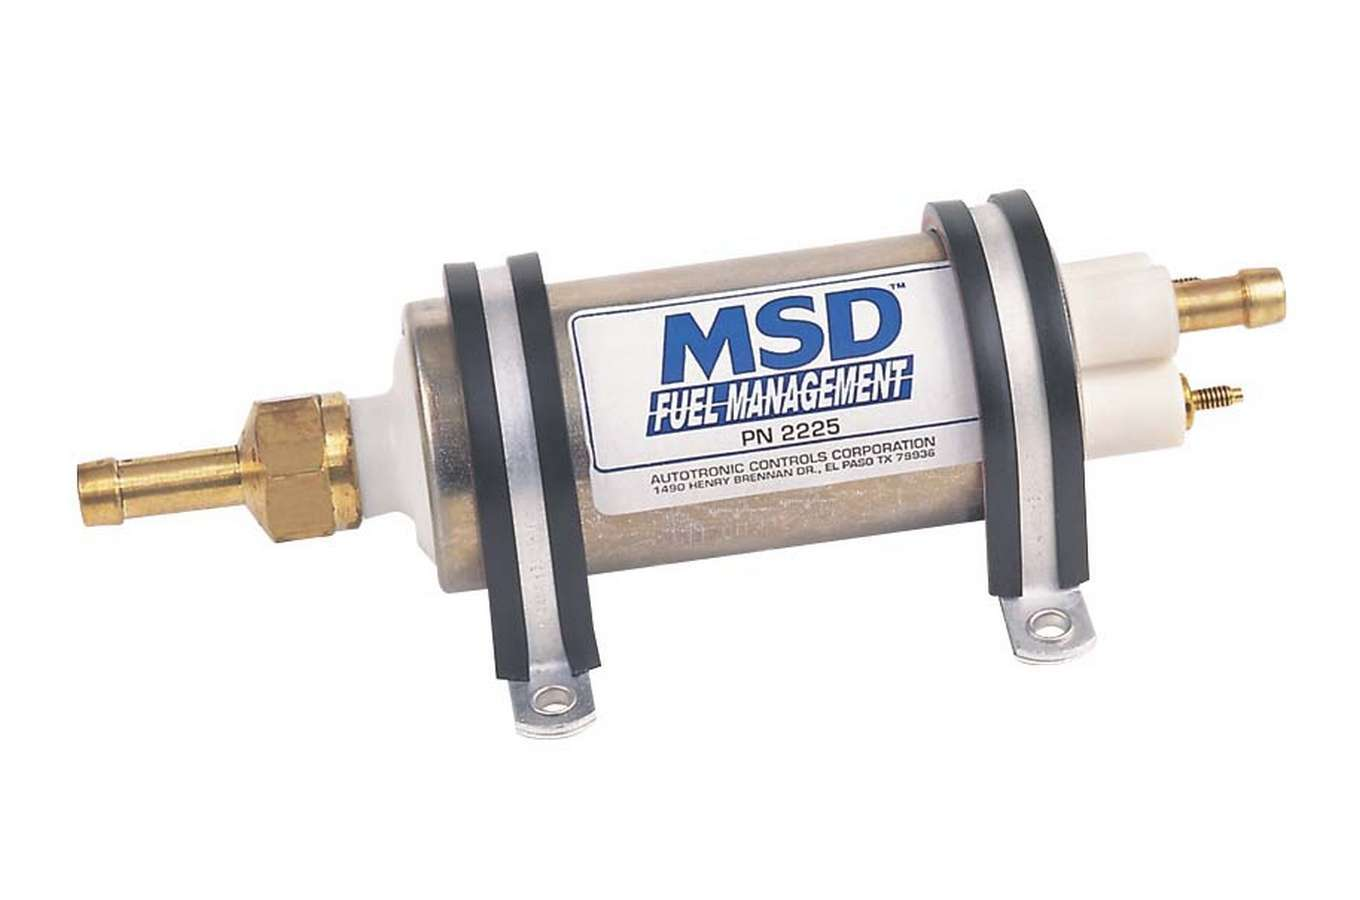 MSD Ignition 2225 Fuel Pump, Electric, In-Line, 43 gph at 40 psi, 3/8 in Hose Barb Inlet, 5/16 in Hose Barb Outlet, Mounting Brackets Included, Kit